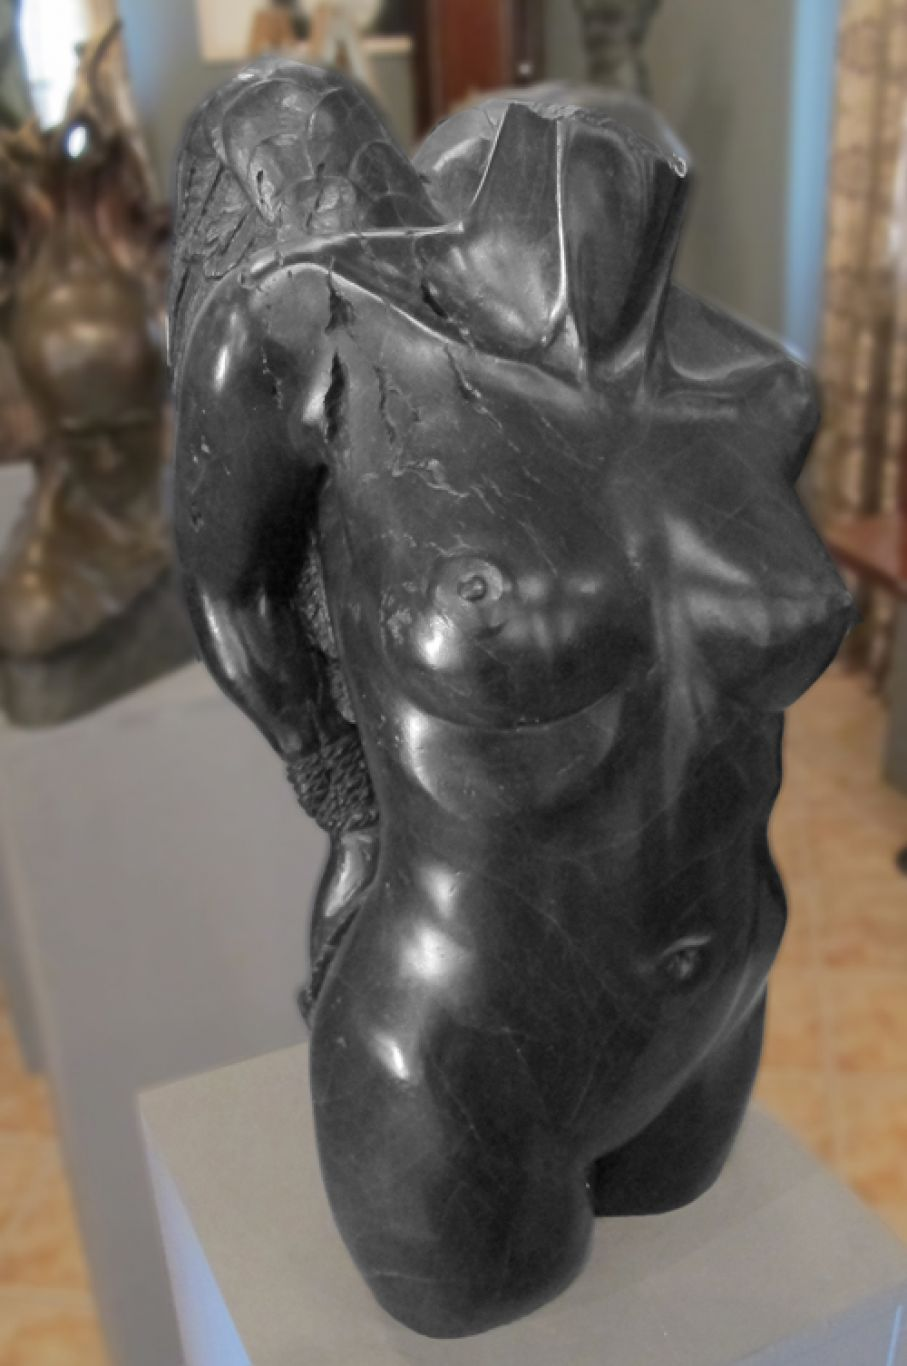 Original bronze sculpture of  Sherry Tipton with patina. Dimensions: 55 X 26 X 17  (without its base).